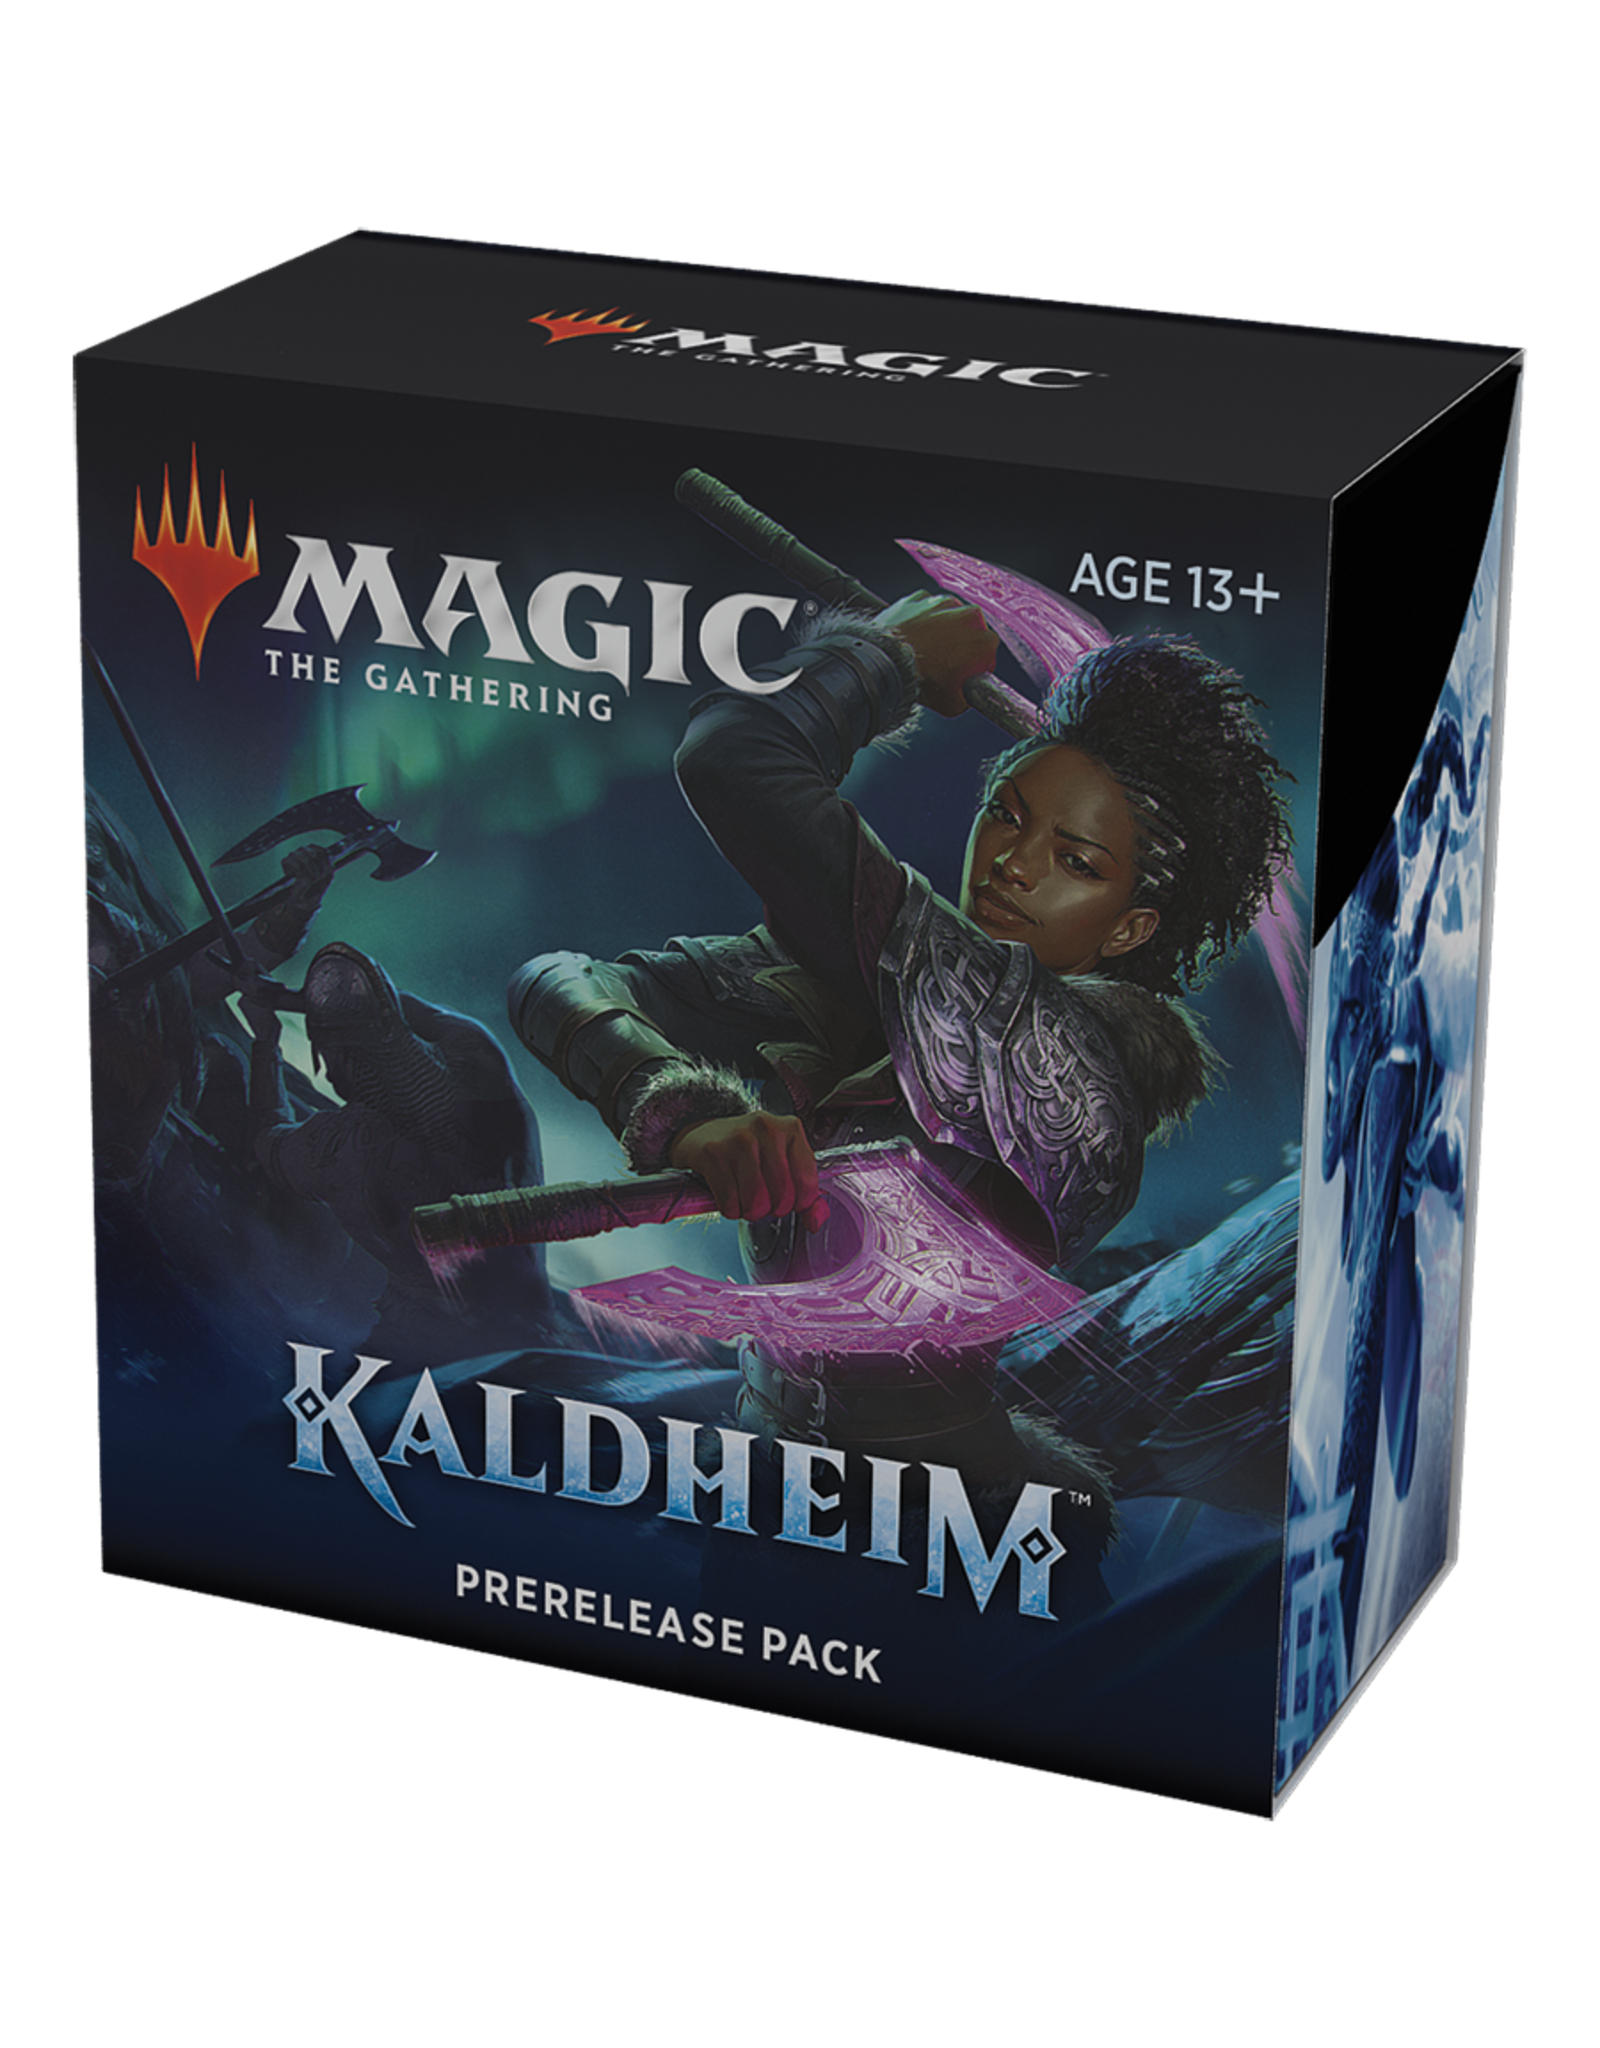 Magic: The Gathering Magic: The Gathering - Kaldheim Prerelease Pack